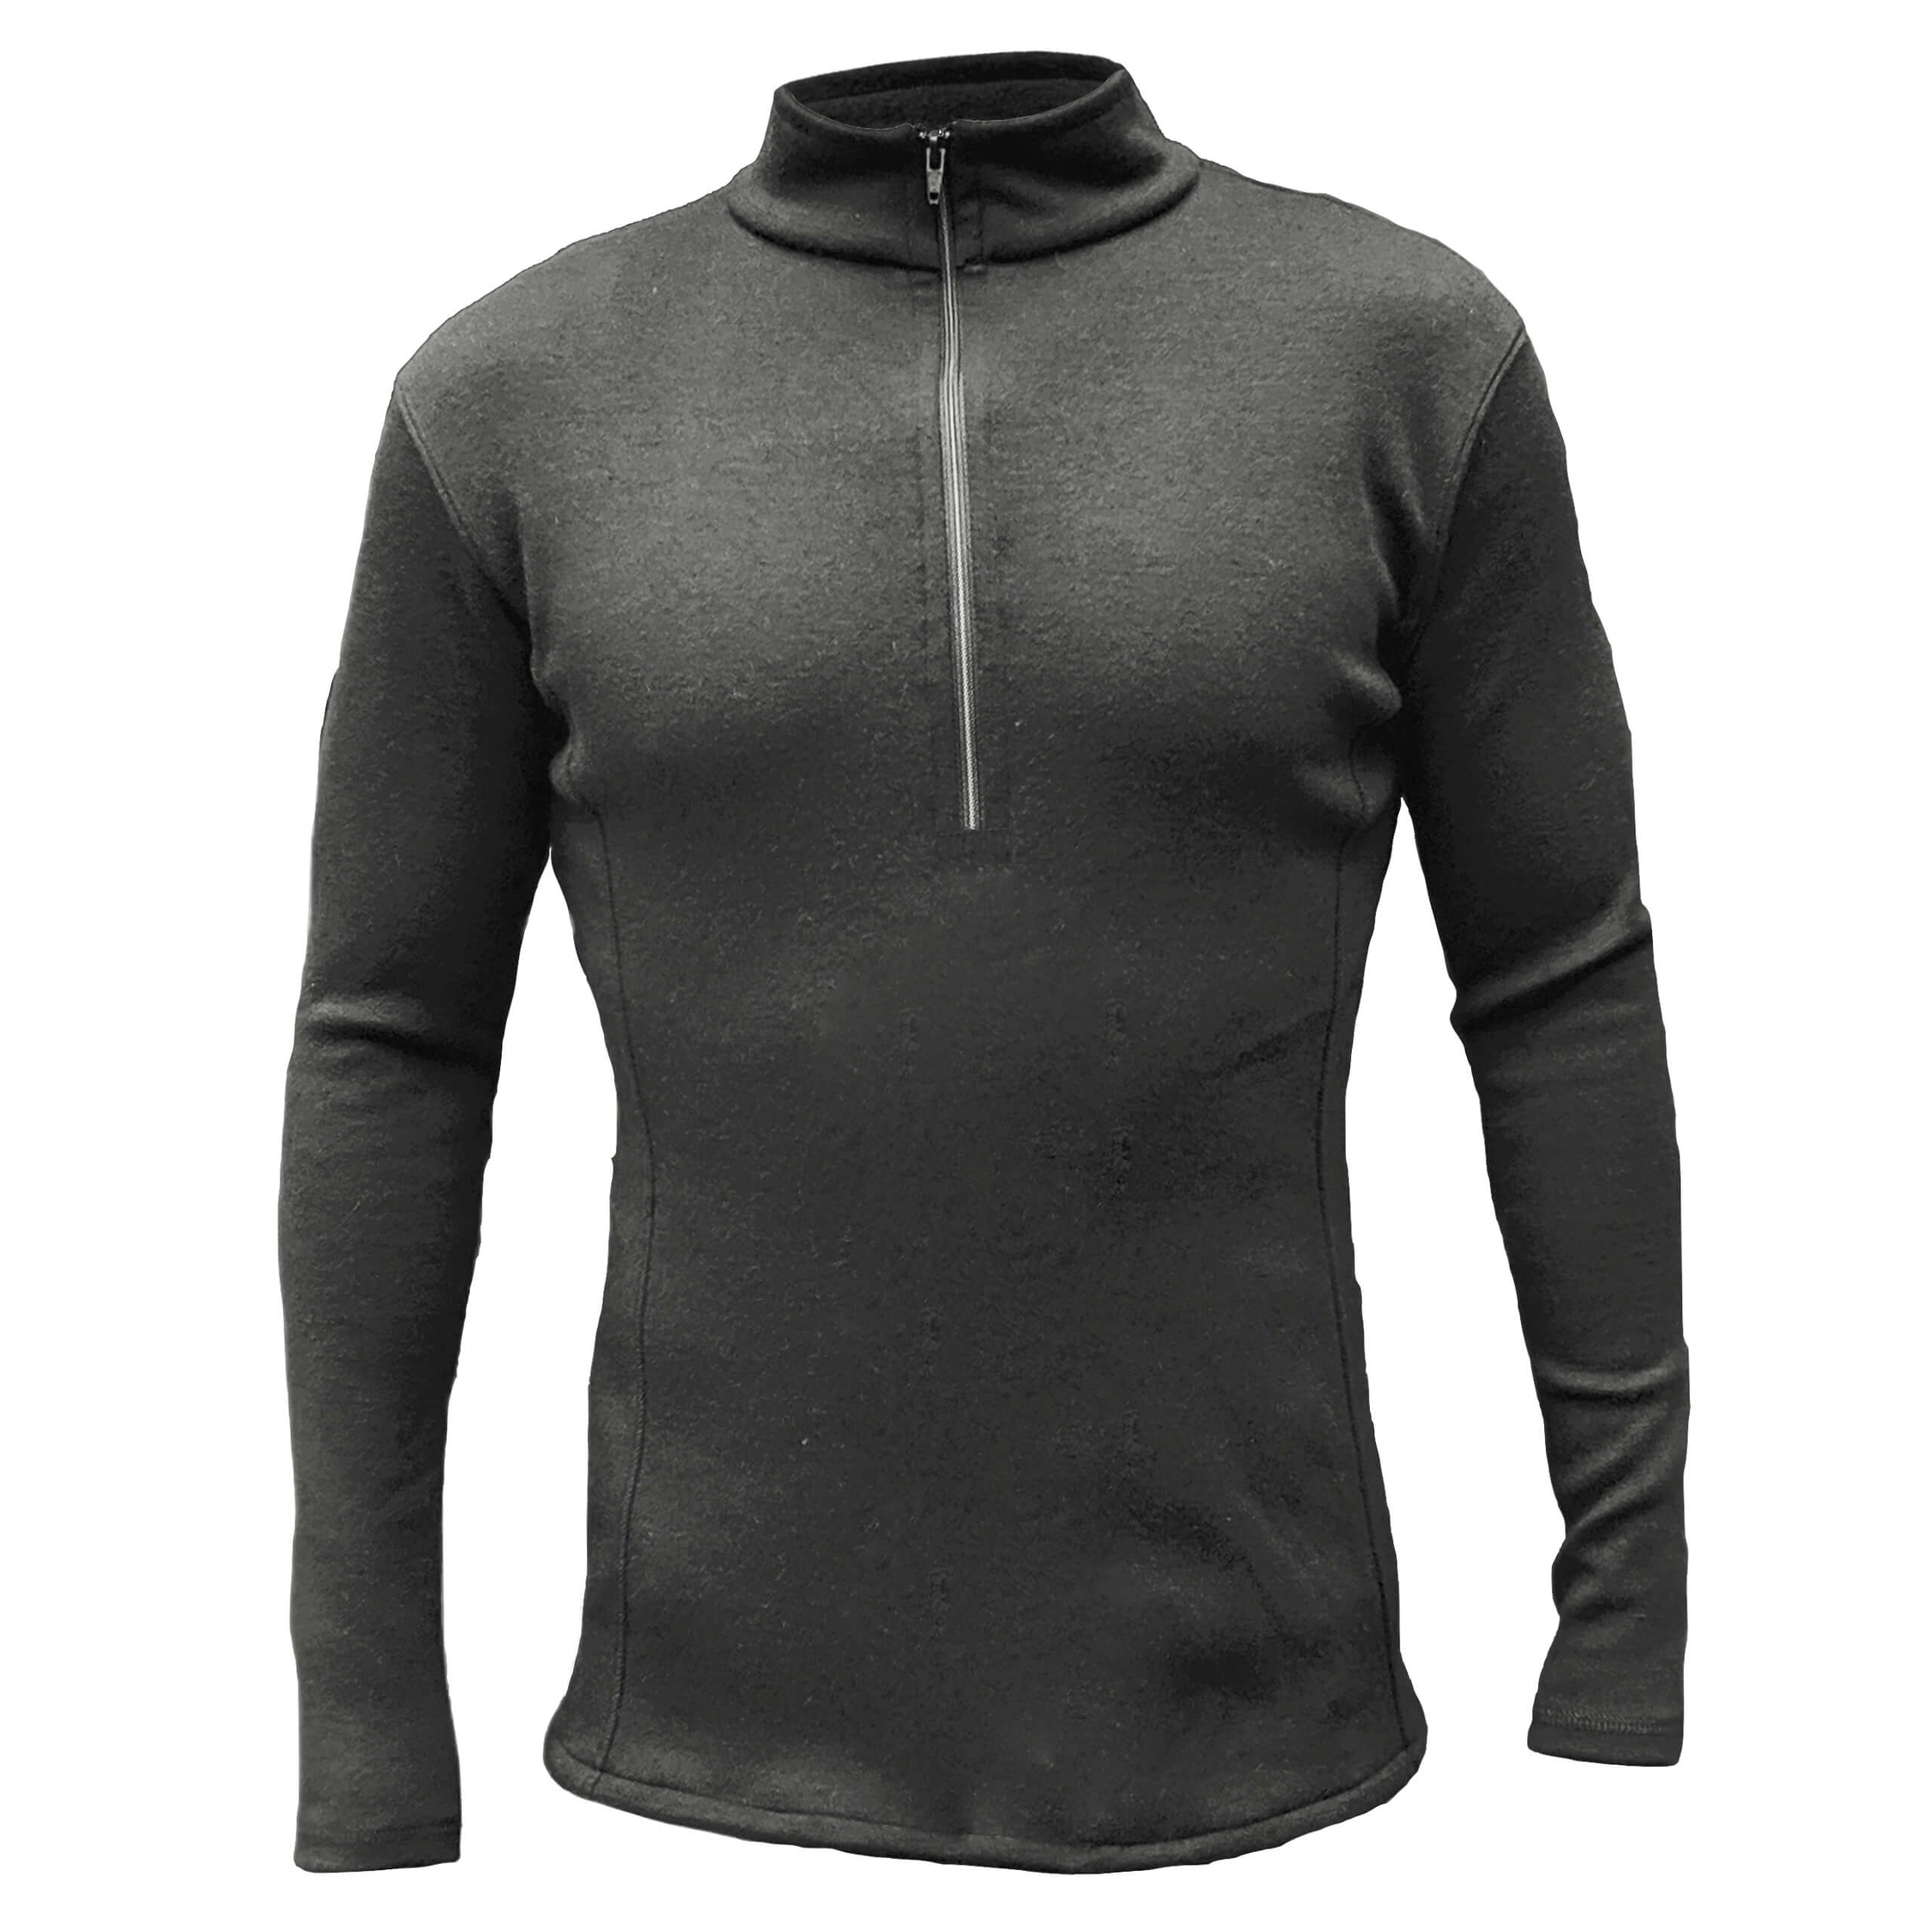 Men's alpaca wool mid layer with half zip and neck in black